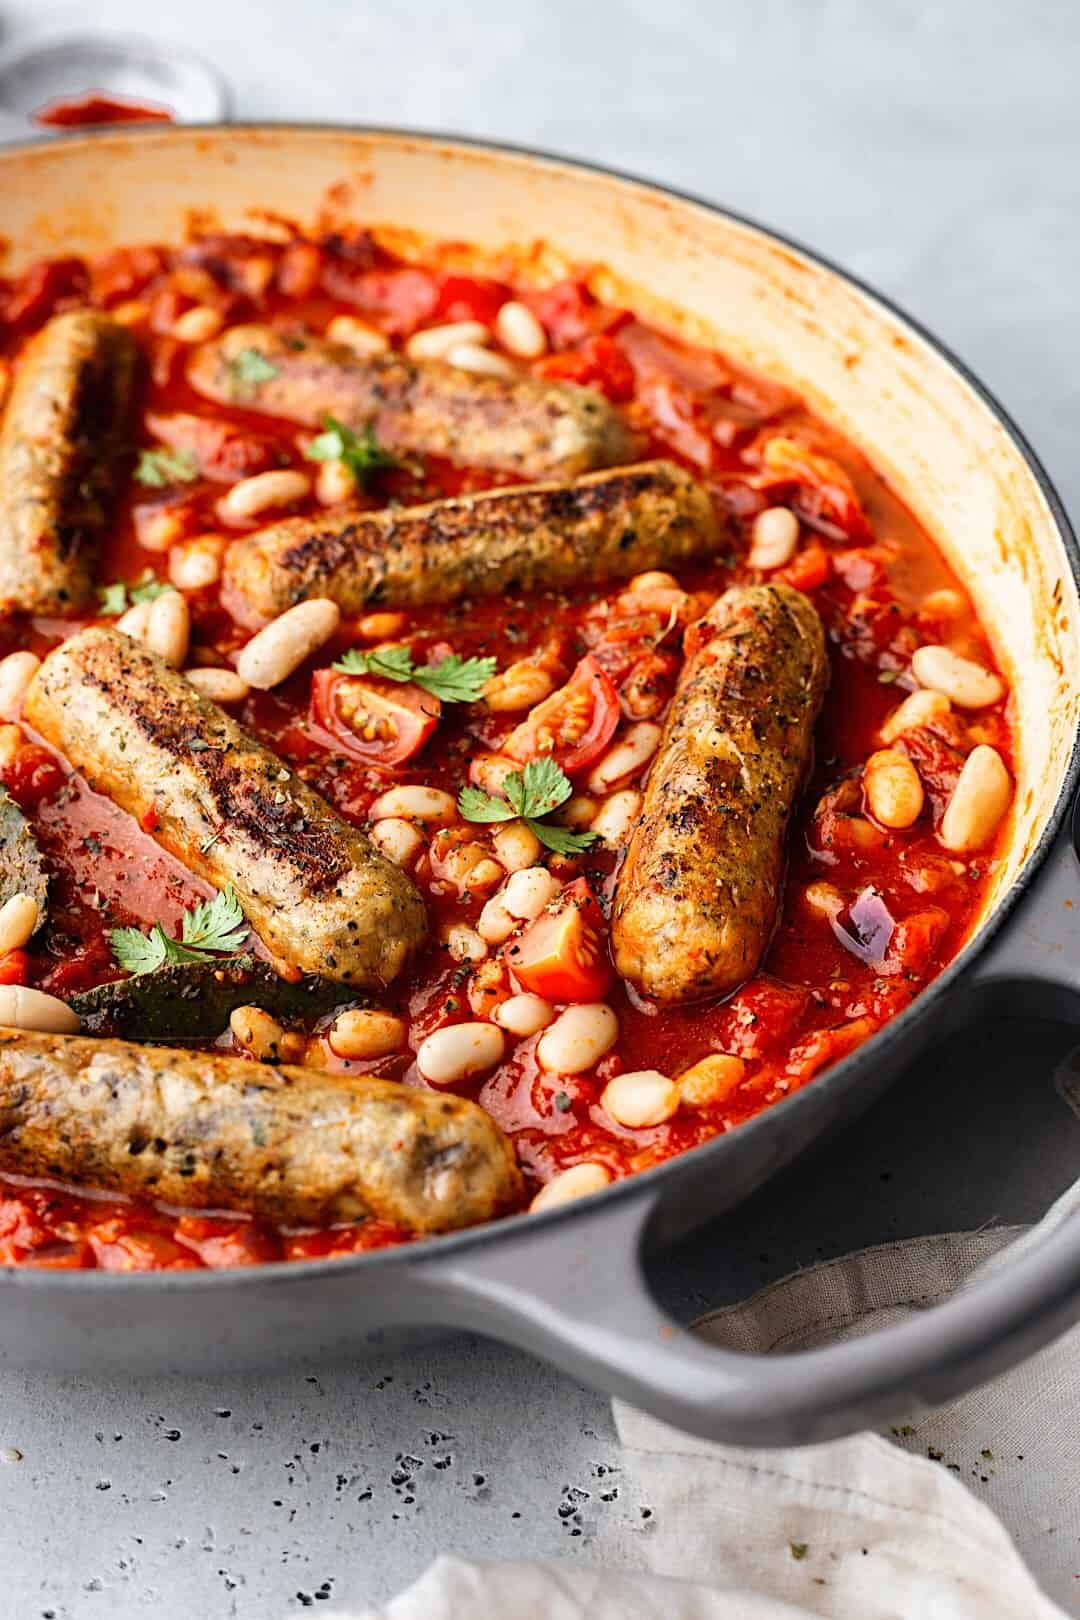 Vegan Sausage and Cannellini Bean Casserole #vegan #recipe #food #sausage #casserole #stew #cannellini #bean